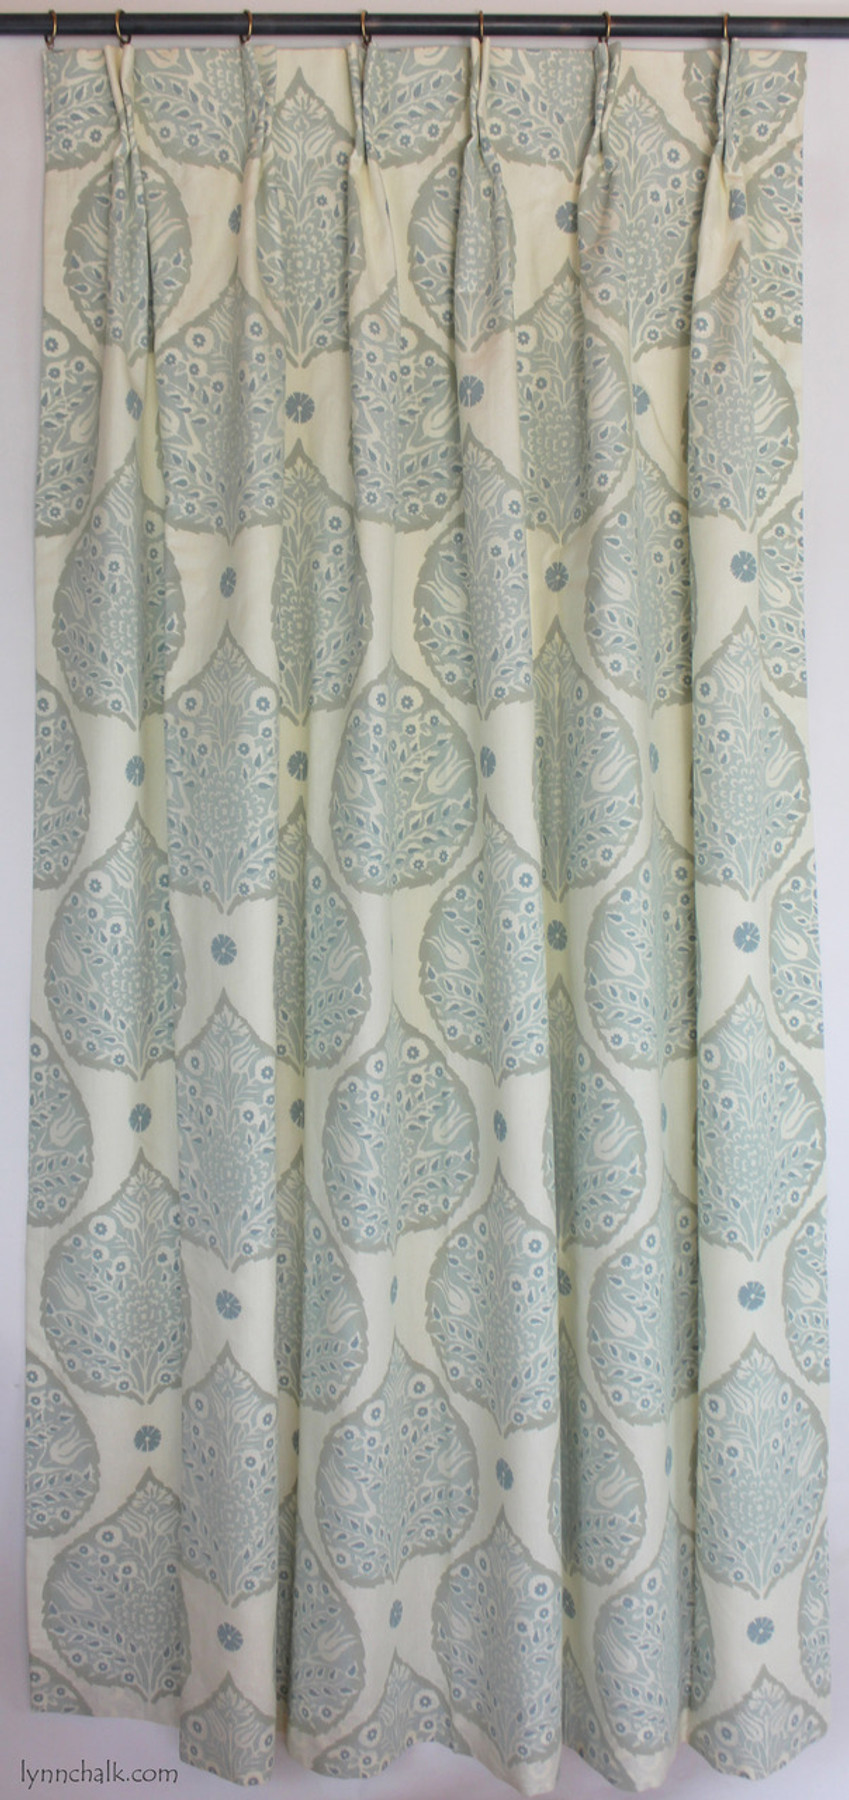 Galbraith & Paul Lotus Double Wide Roman Shade in Custom Colors